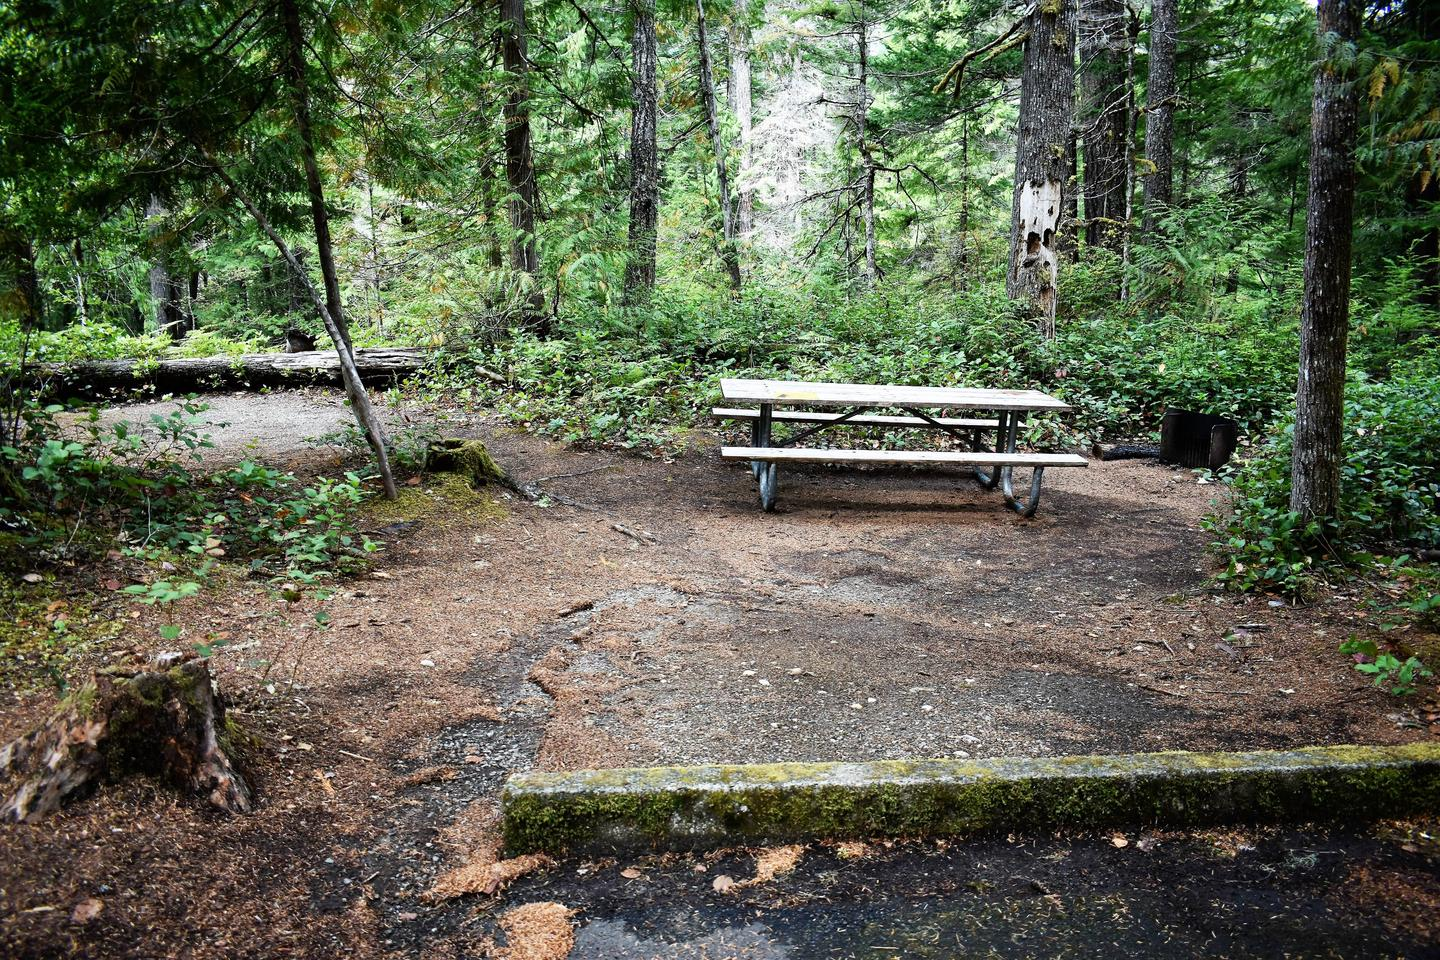 Tent area, picnic table, and fire ringView of campsite